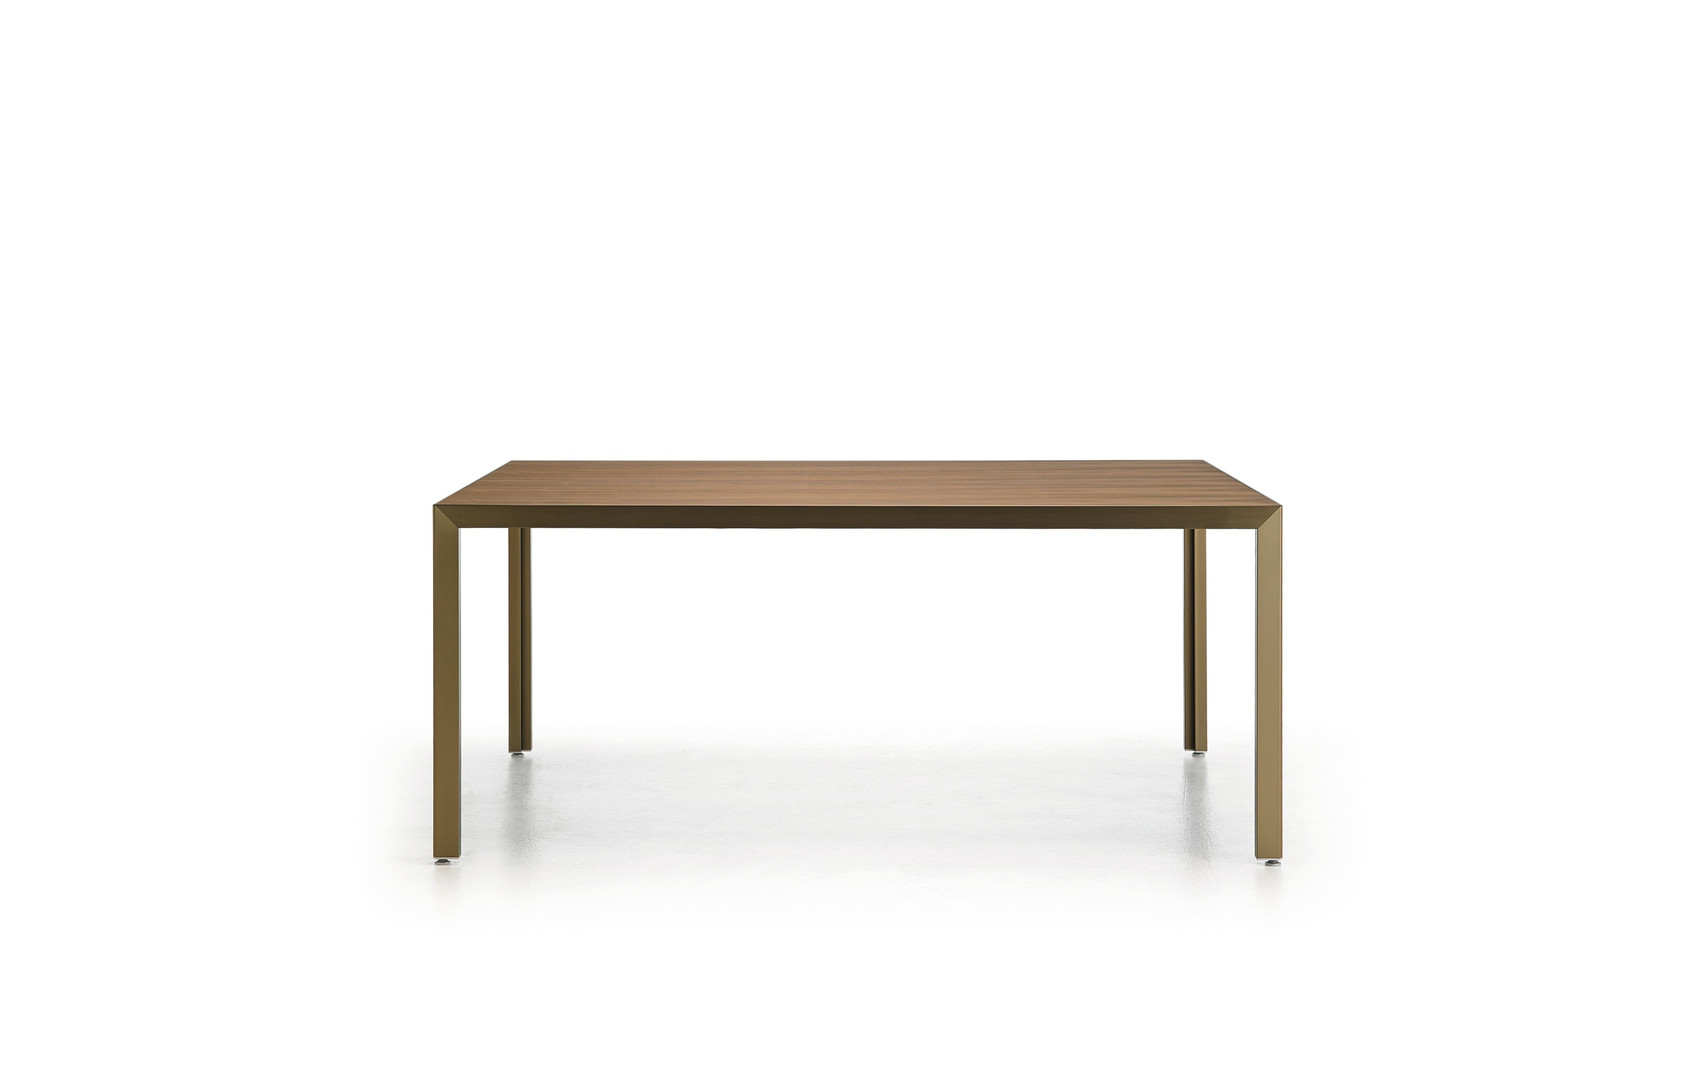 Punt Denia Table